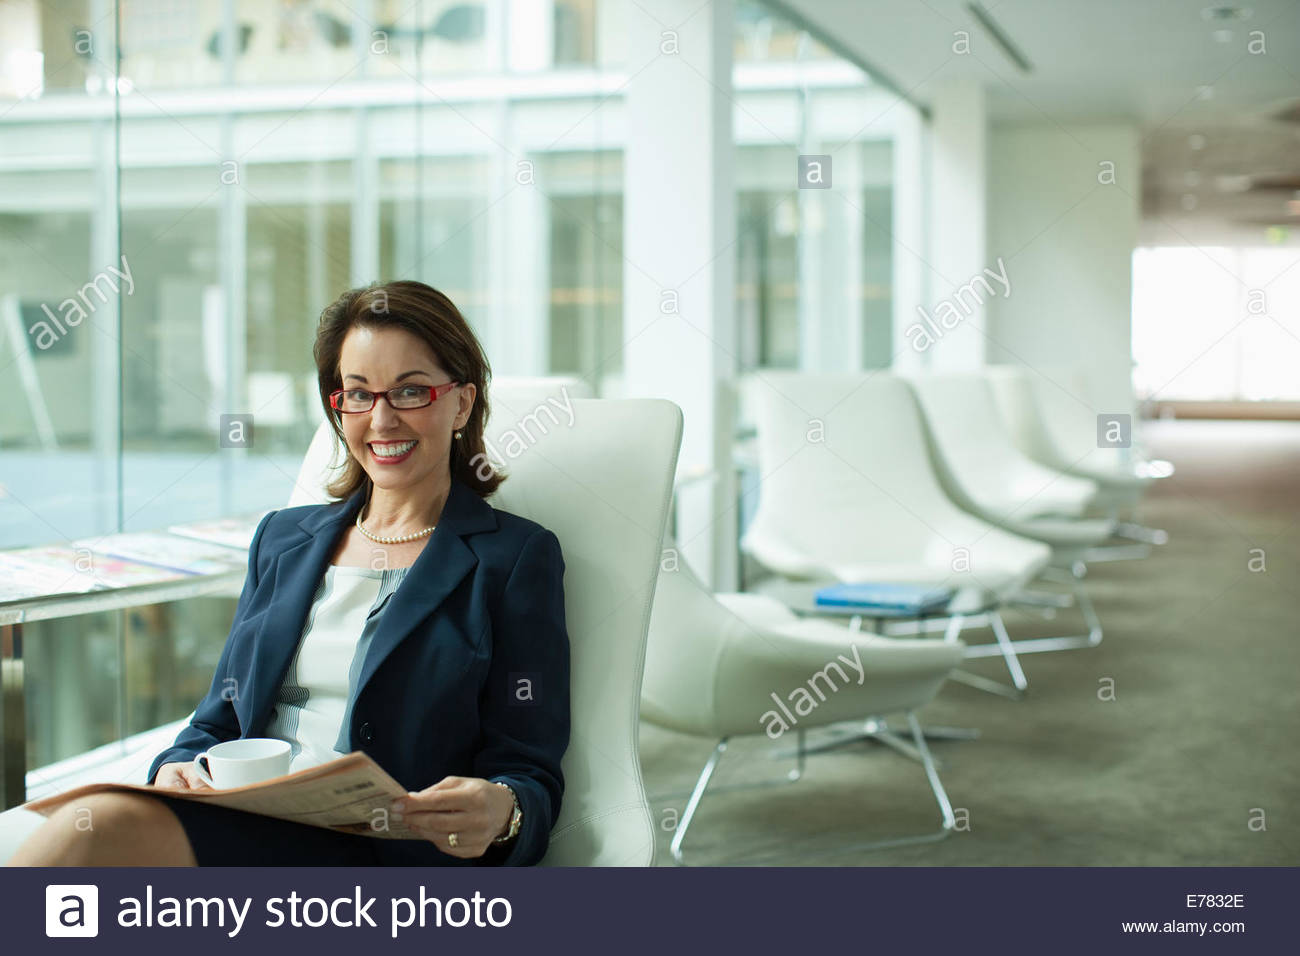 Businesswoman reading newspaper in waiting area - Stock Image